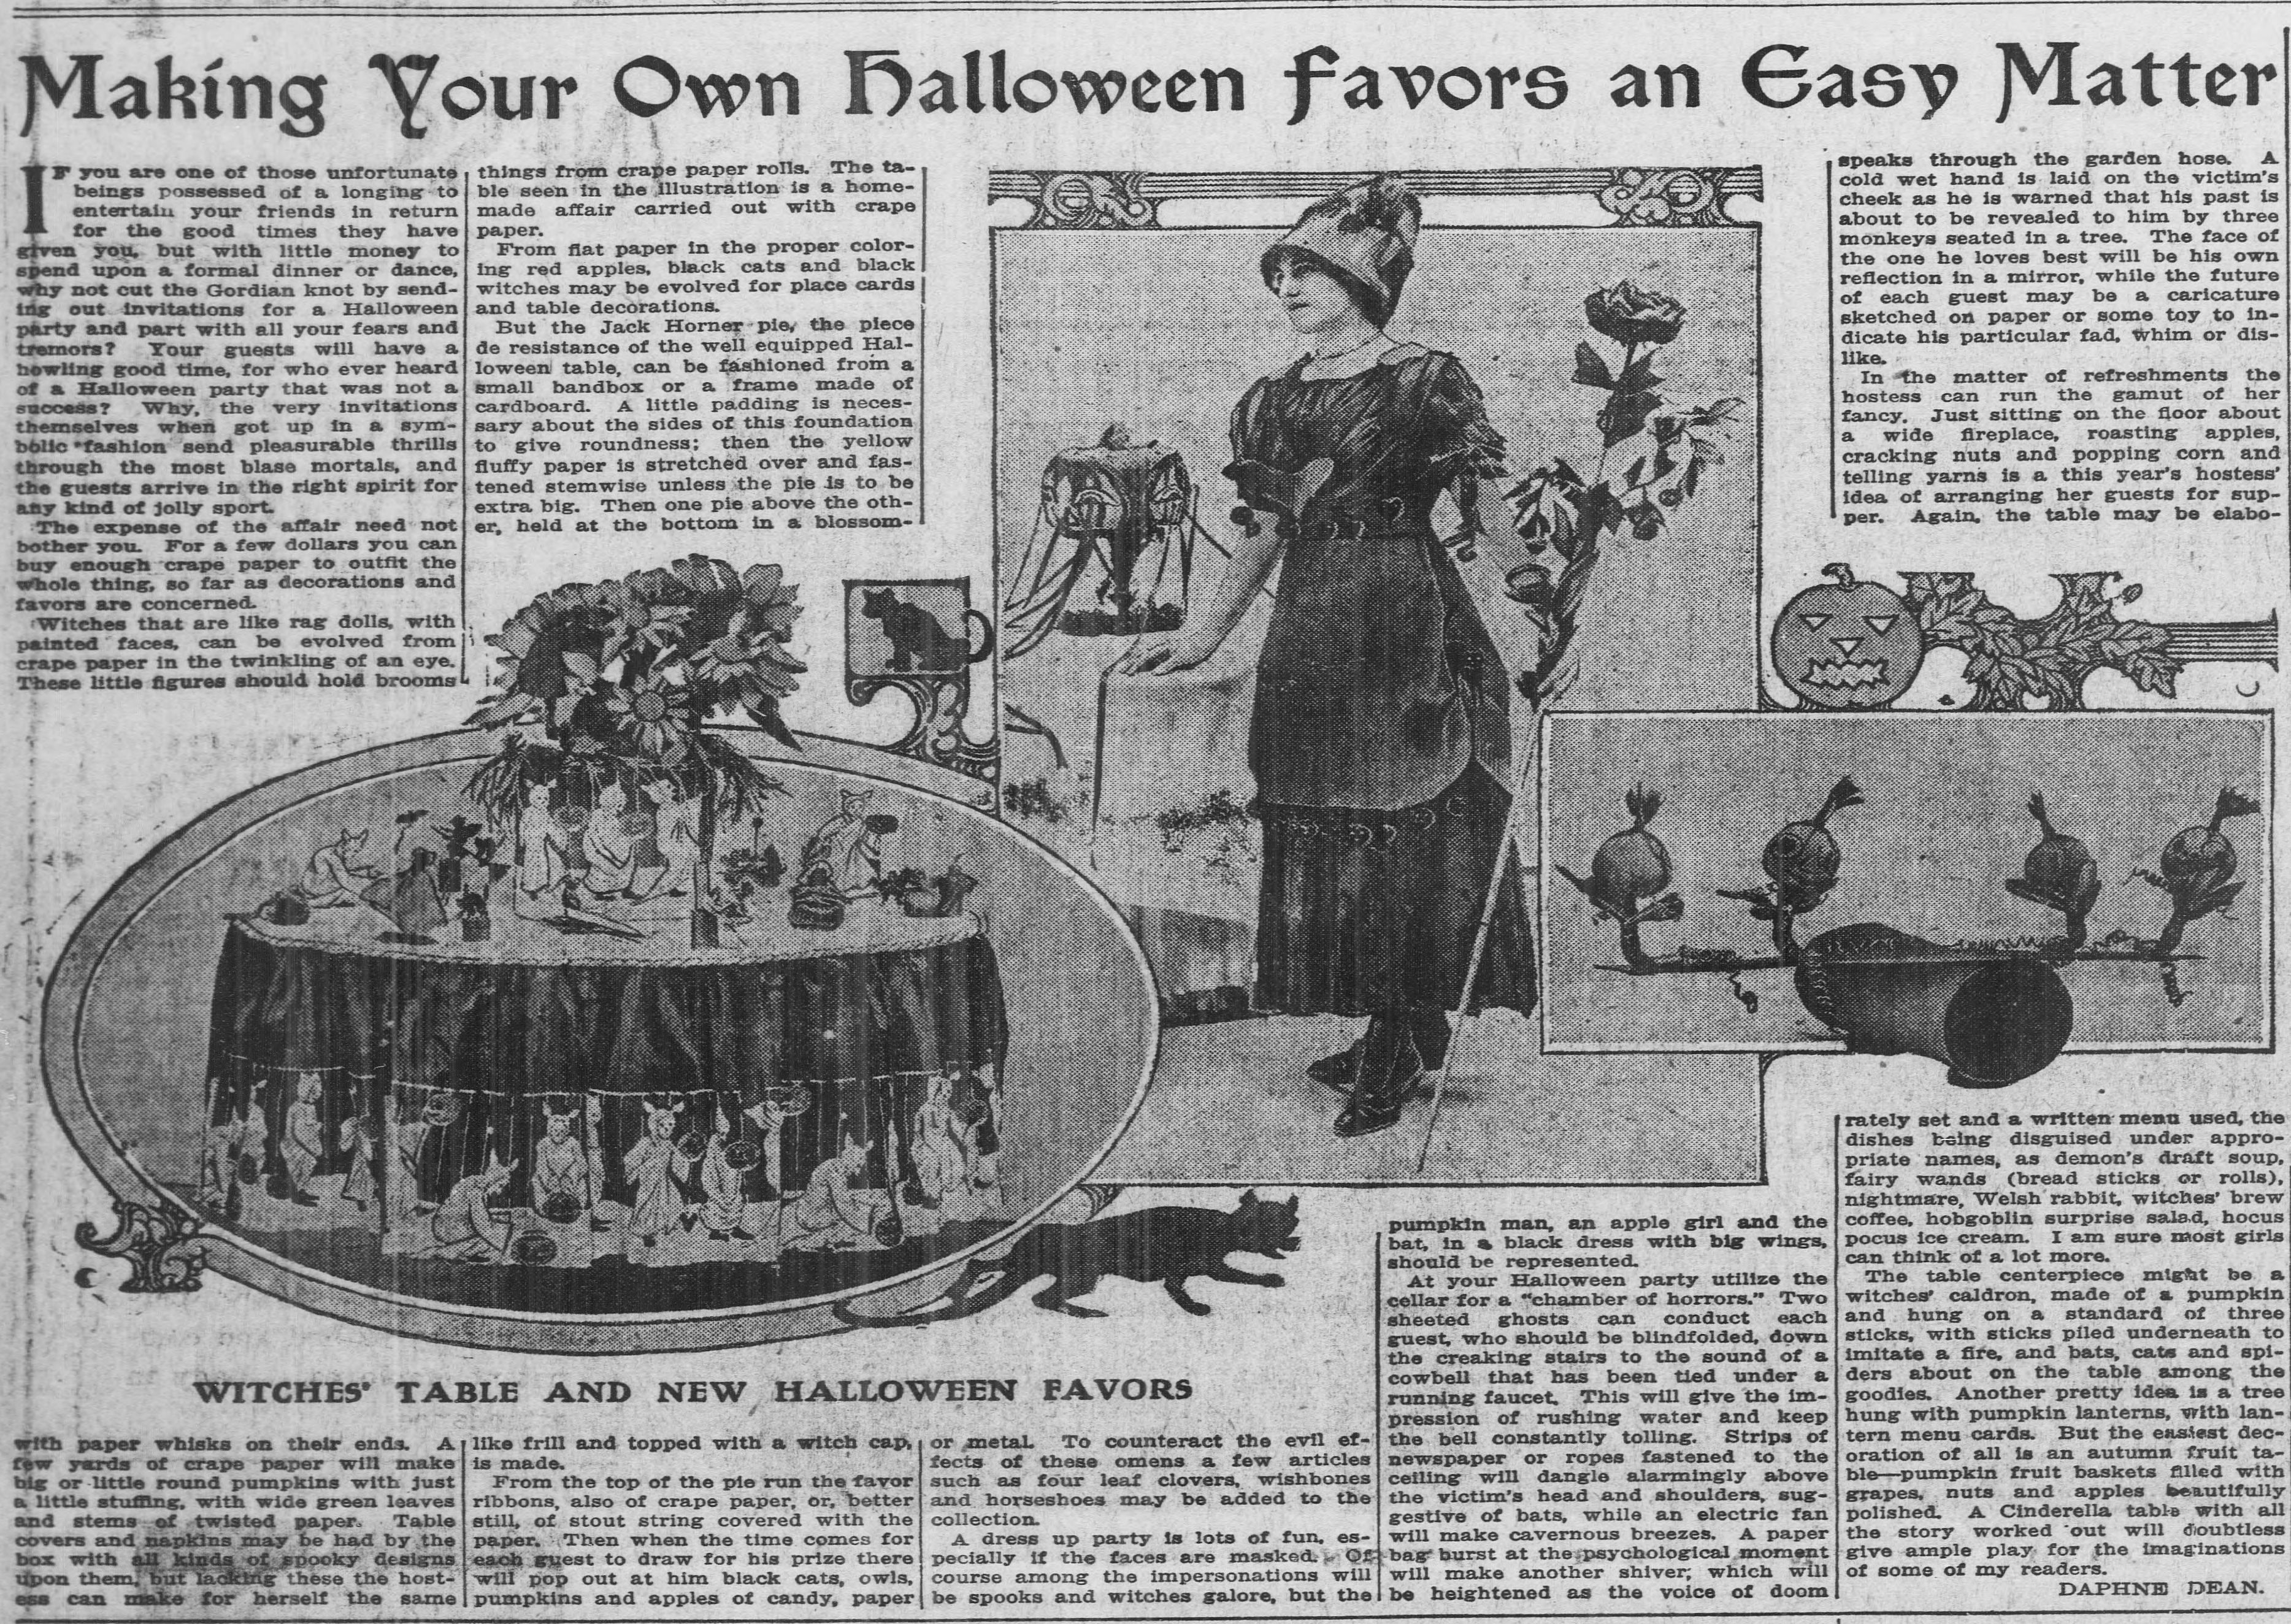 Half page article describing how to make affordable favors for a Halloween party. Iluustratio of table settings and a Jack Horner pie.